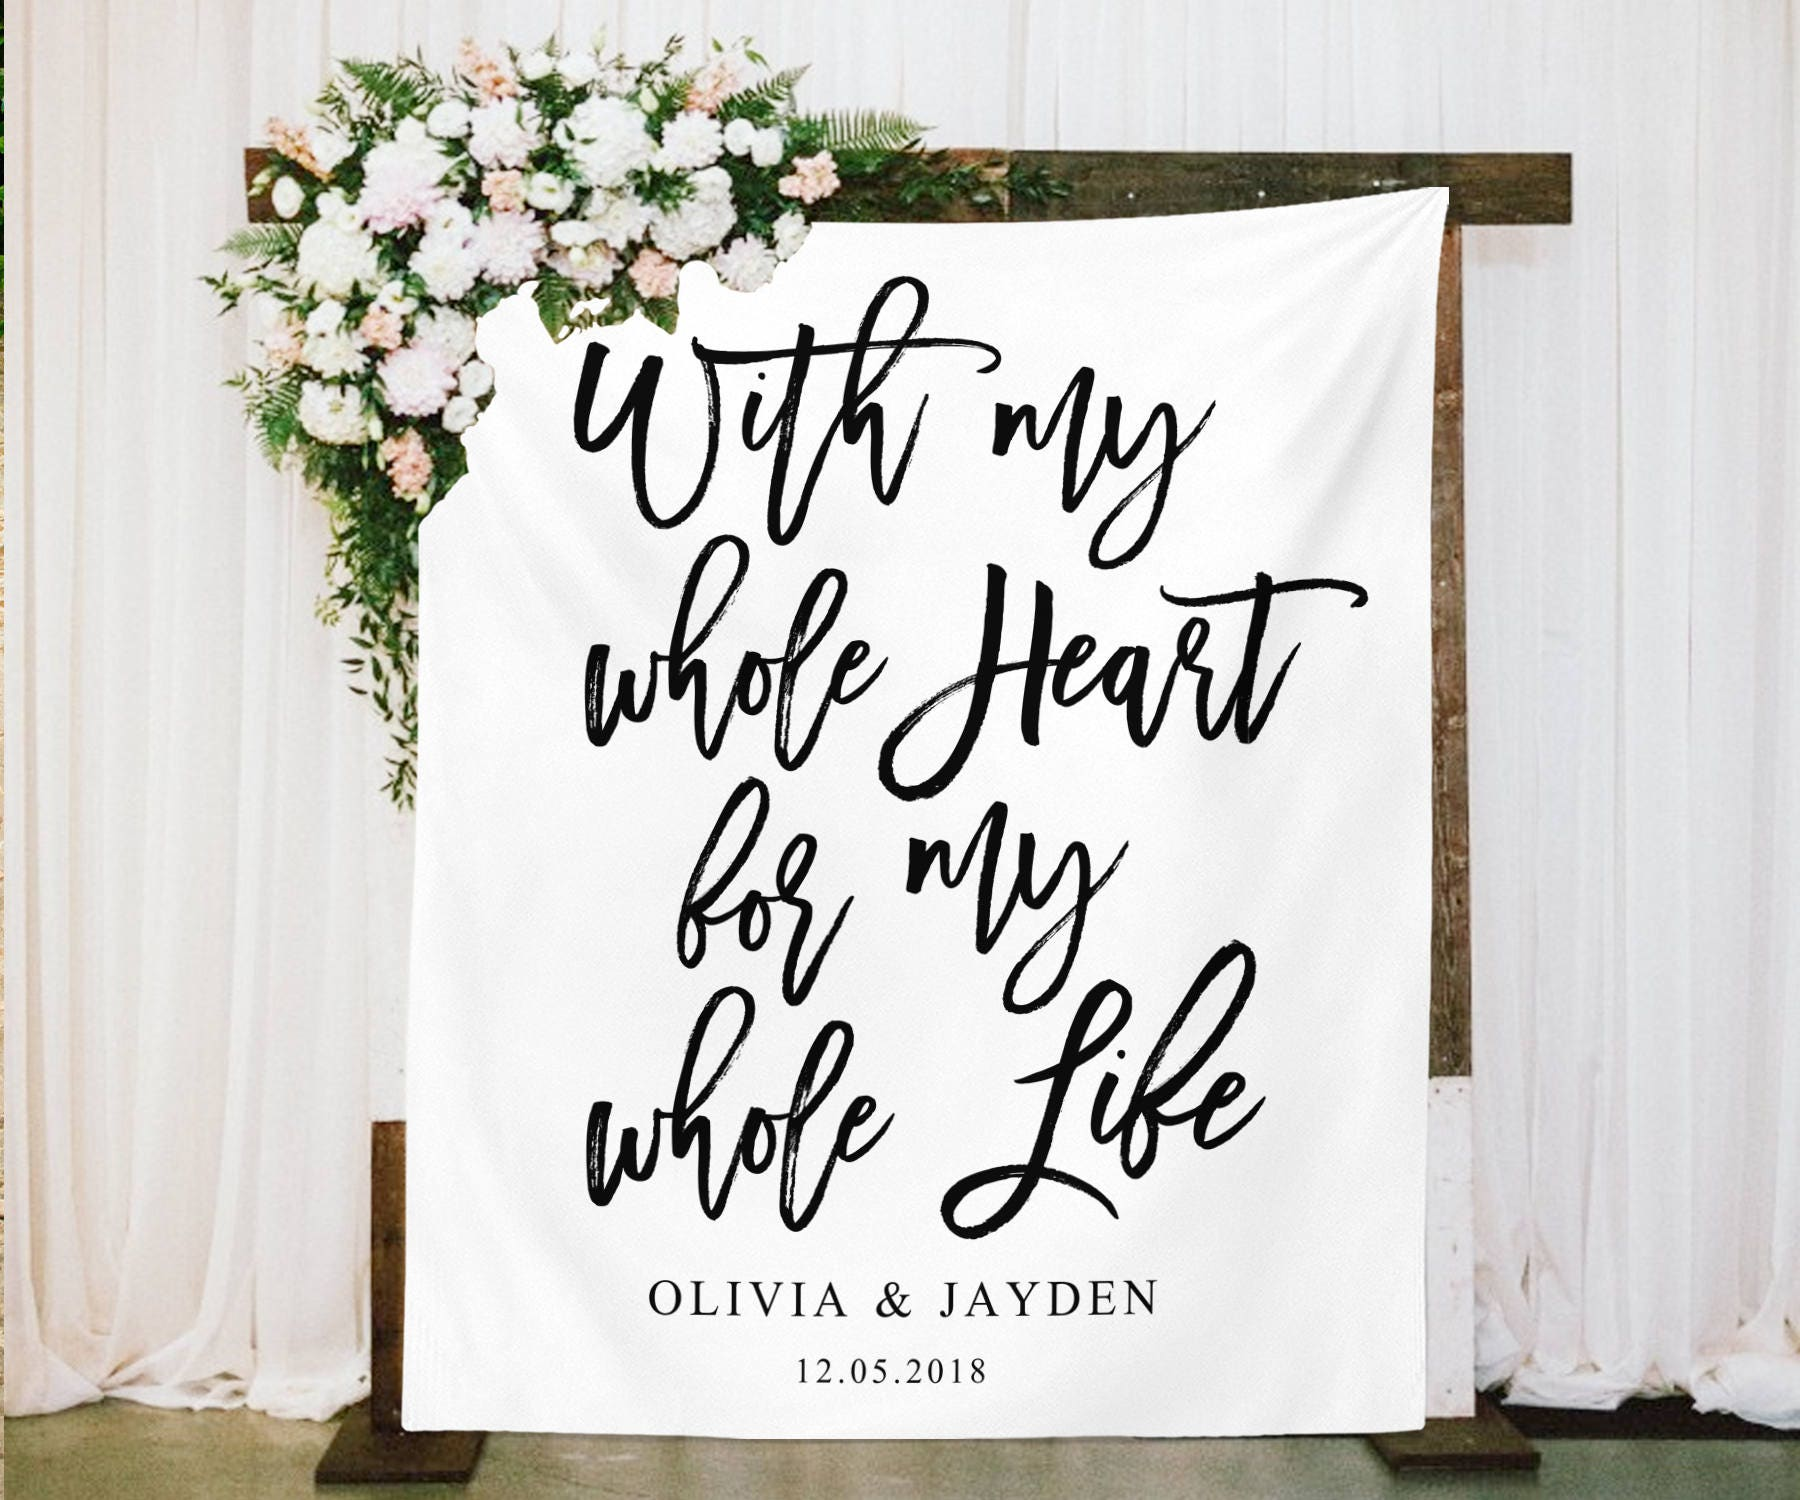 Country Wedding Backdrops: Rustic Wedding Backdrop Decoration With My Whole Heart For My